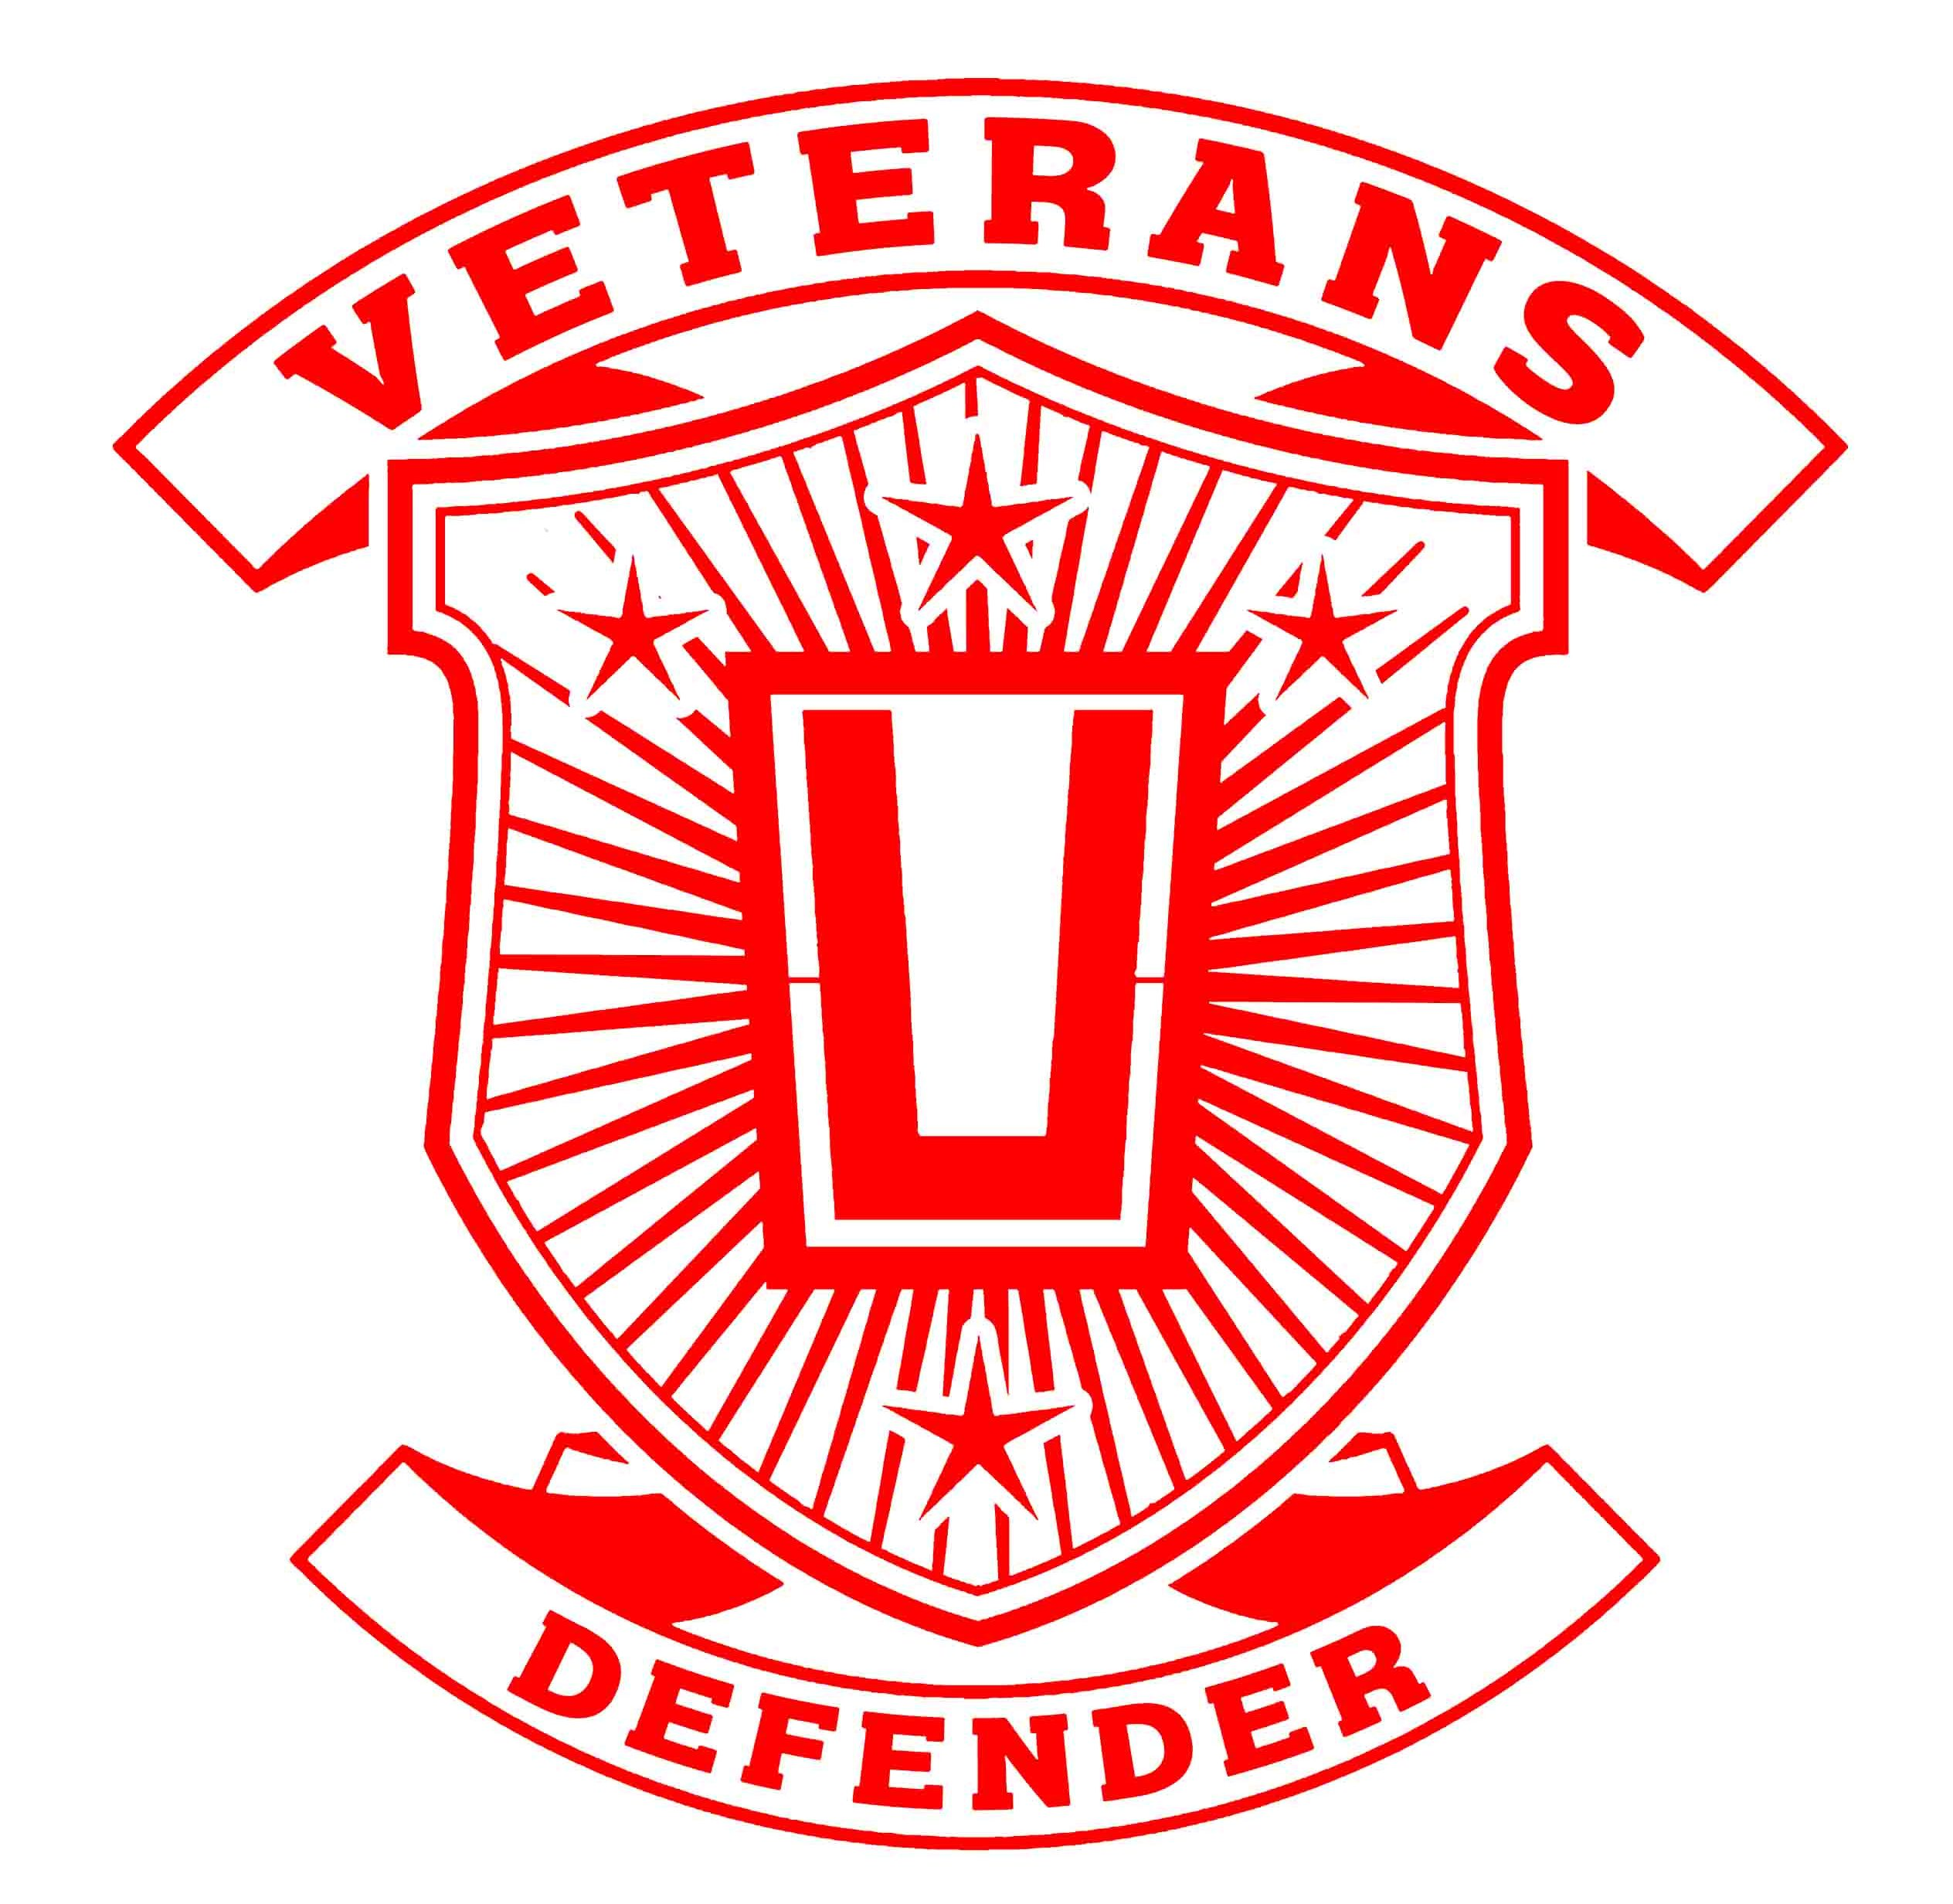 VETERANS DEFENDER 877.794.6837